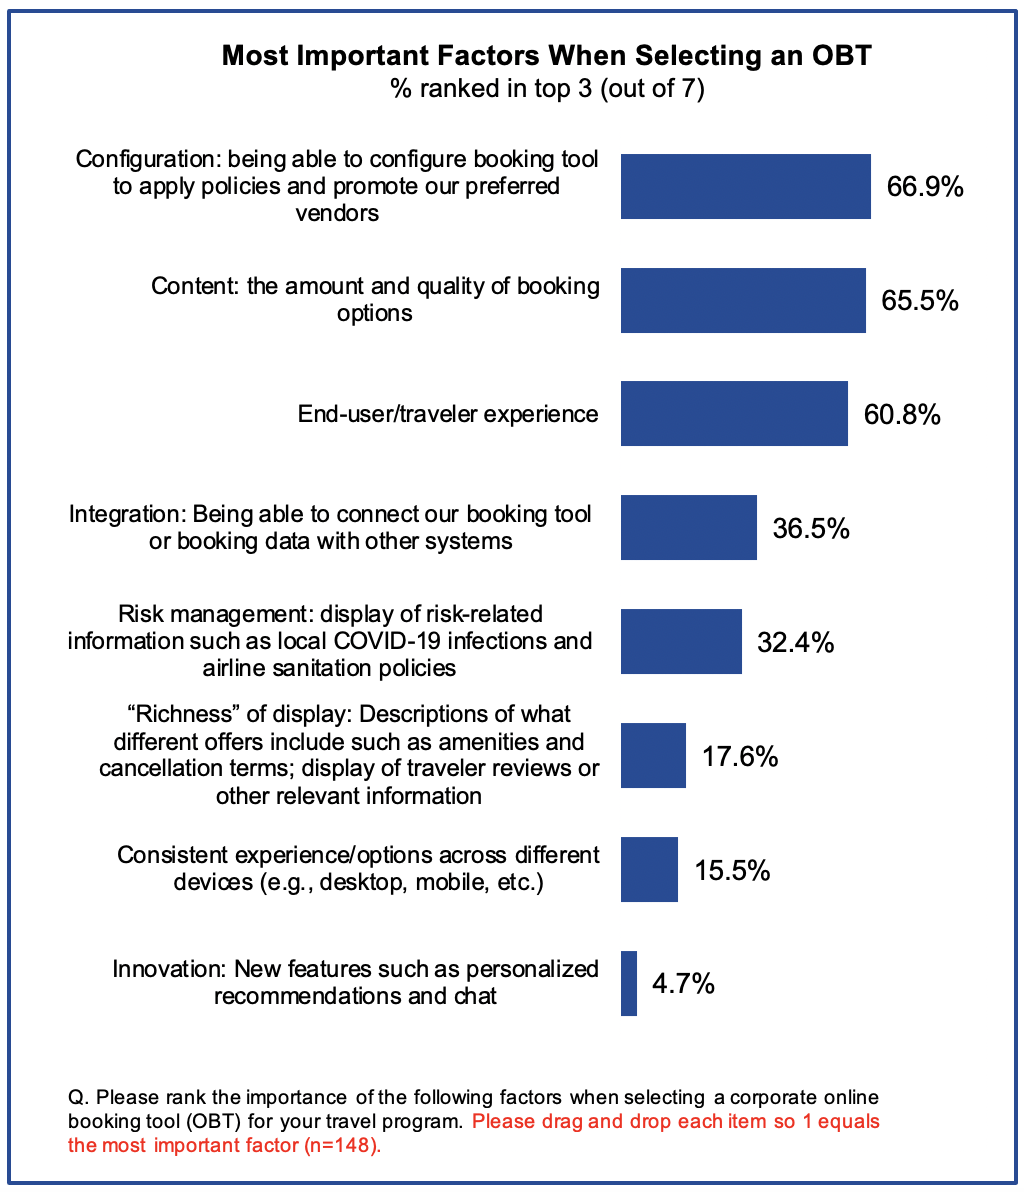 Figure 4: End user/traveler experience was listed as the third most important factor when selecting an online booking tool by 60.8% of surveyed travel managers. The top two considerations listed are configuration (by 66.9% of travel managers) and the amount and quality of content options (65.5%).